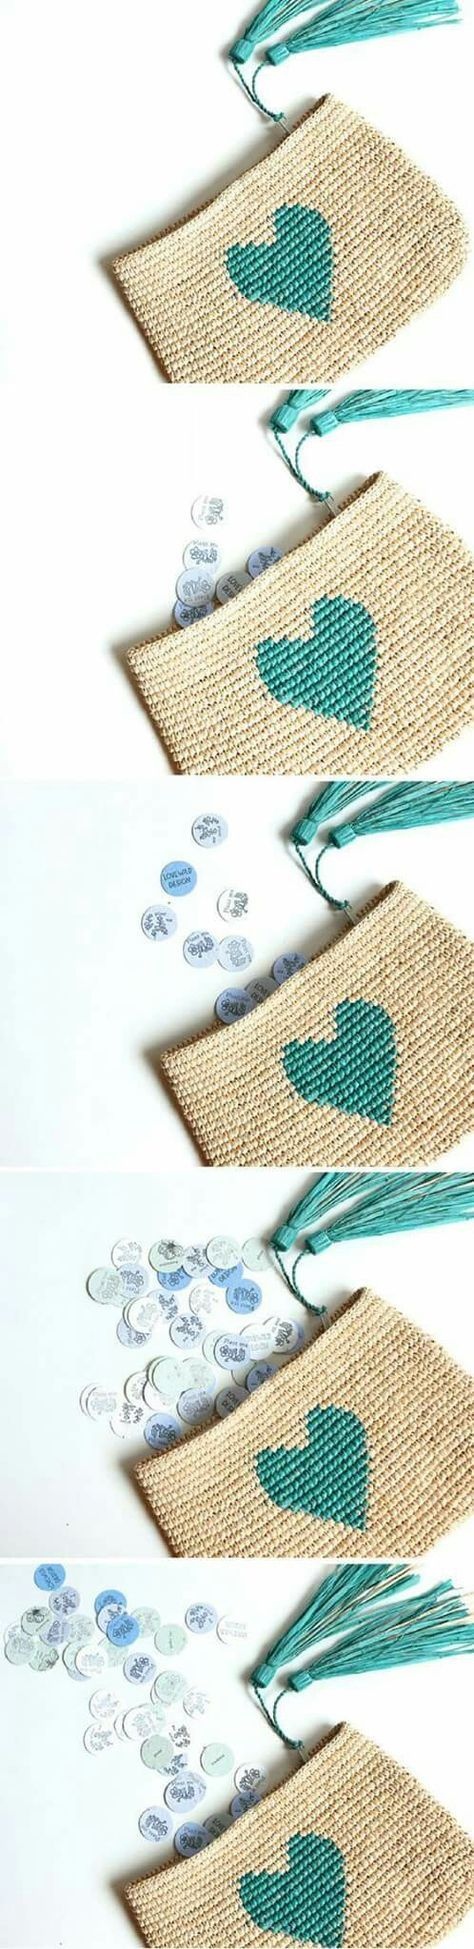 704 besten 43C: covers various,small bags, Bilder auf Pinterest ...